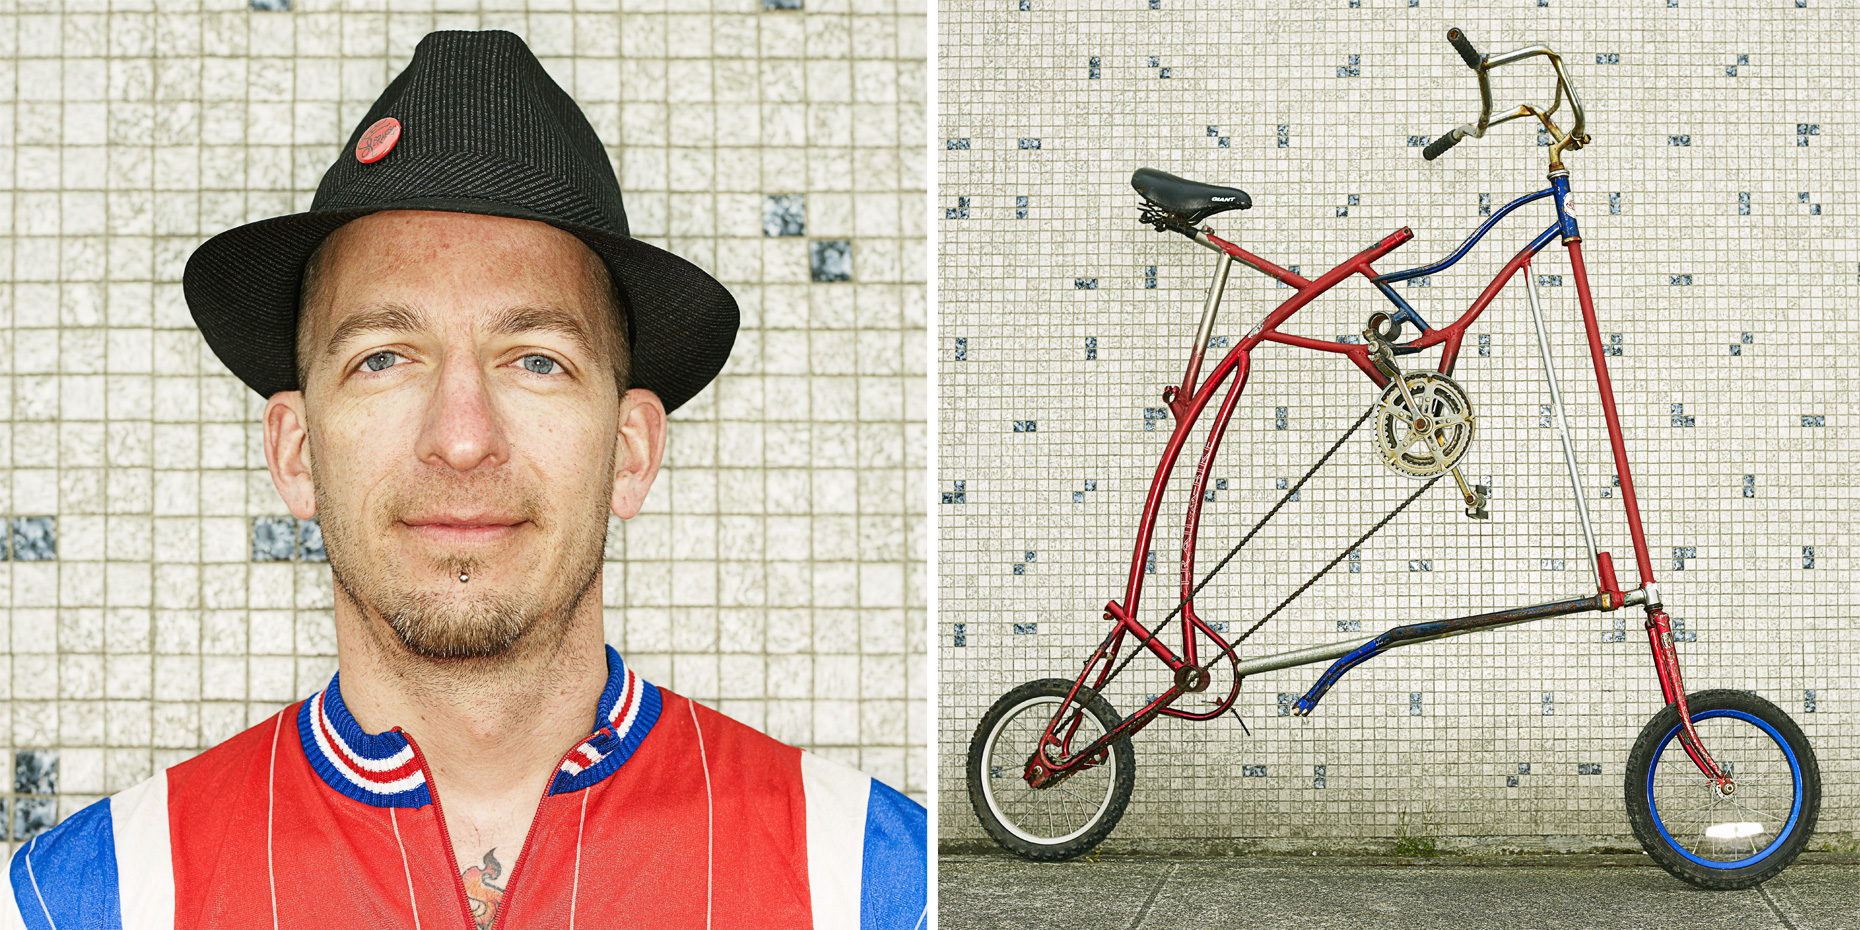 Lindsay Siu Photographer Commercial Editorial Photography Granville Magazine JIM and BIKE-2.jpg